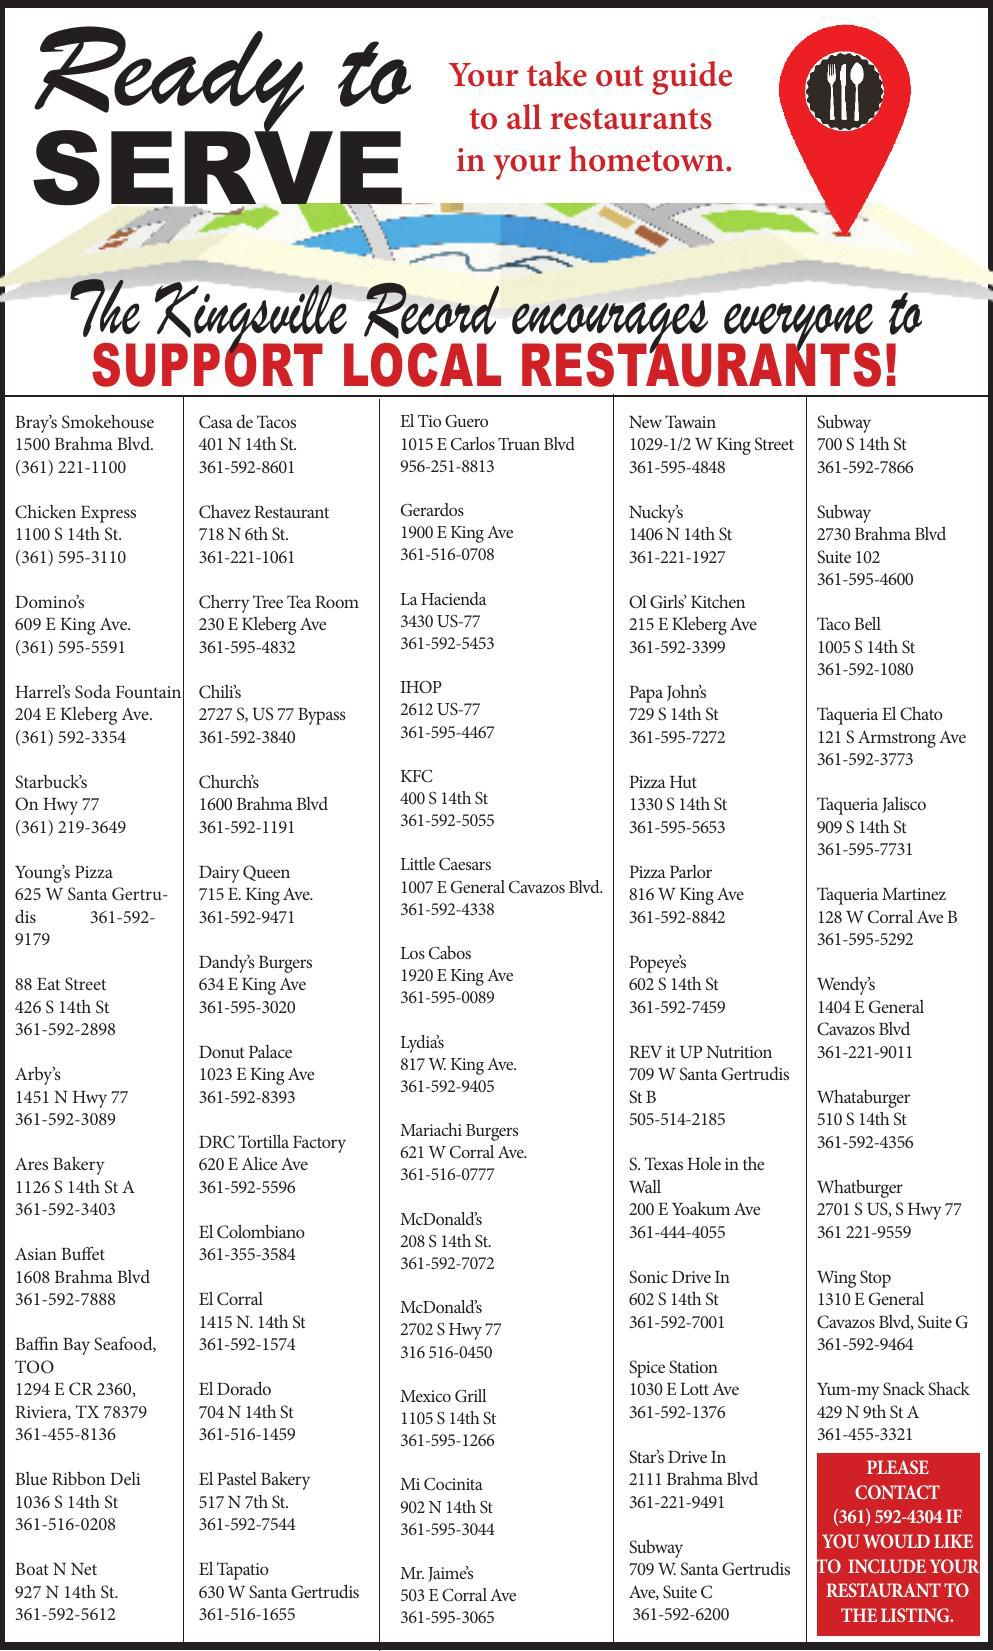 List of Local Restaurants in the area